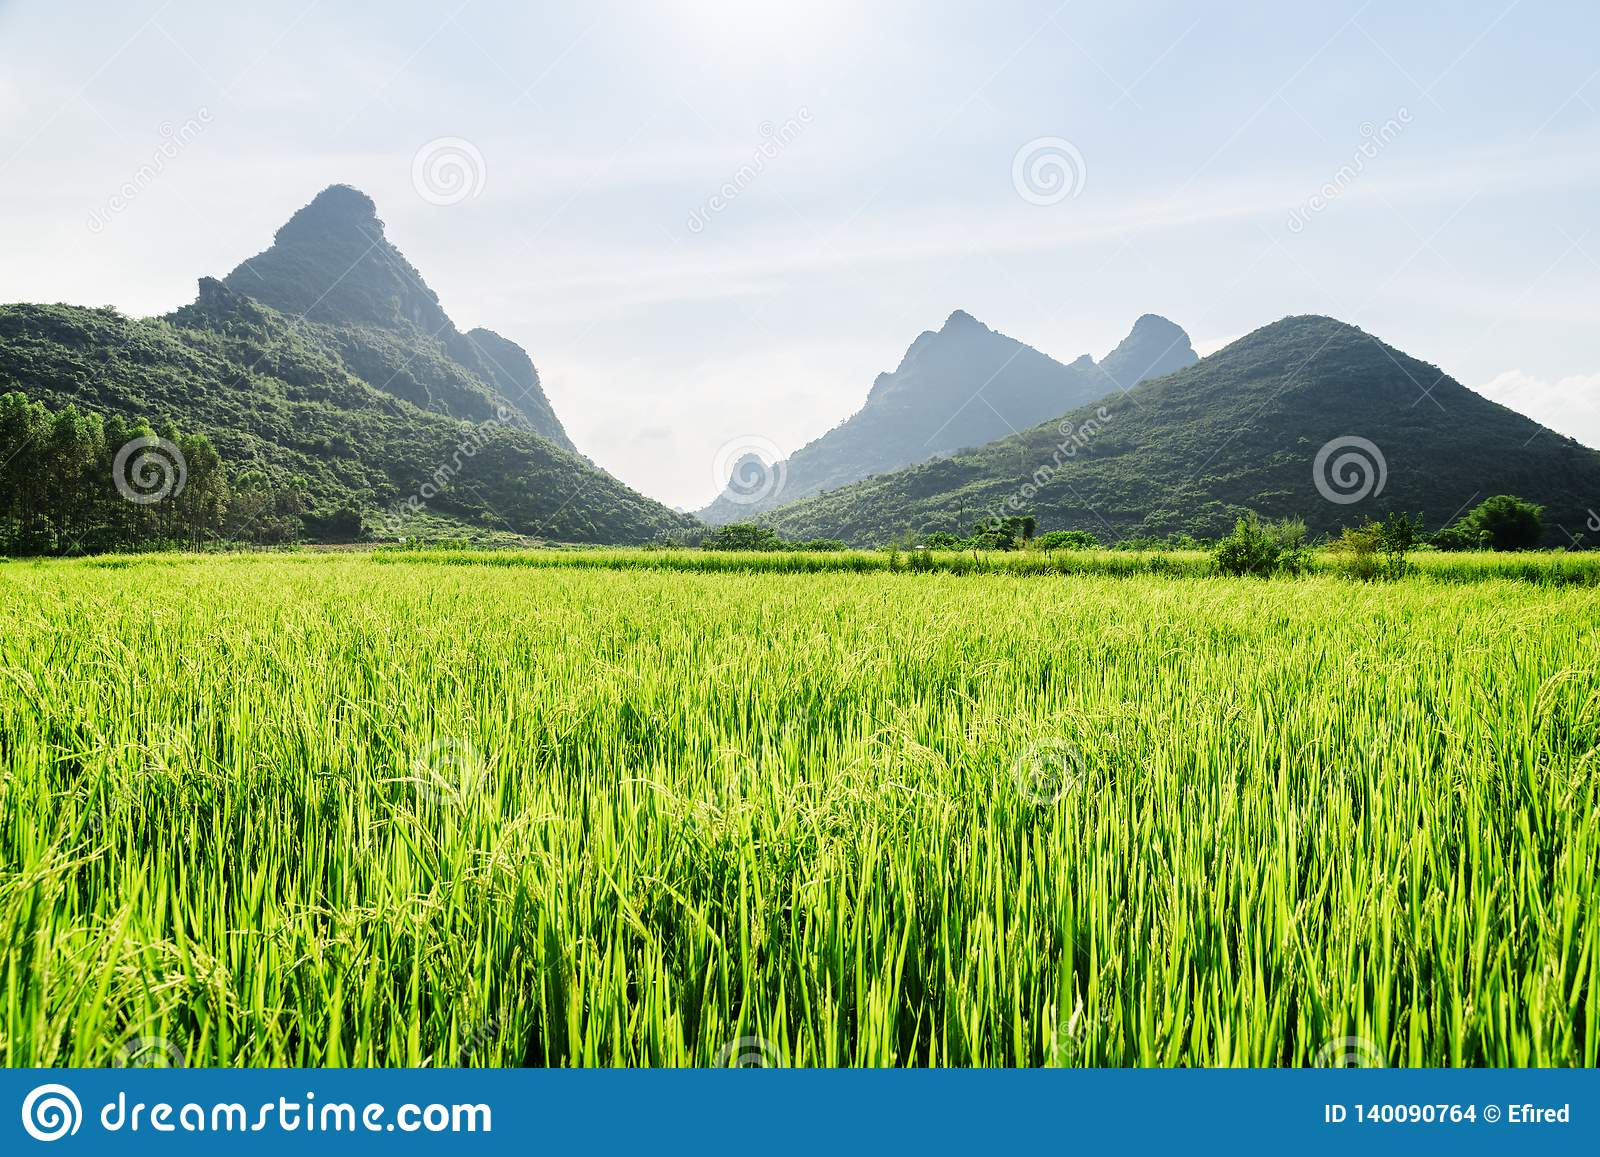 Amazing bright green rice field and scenic karst mountains